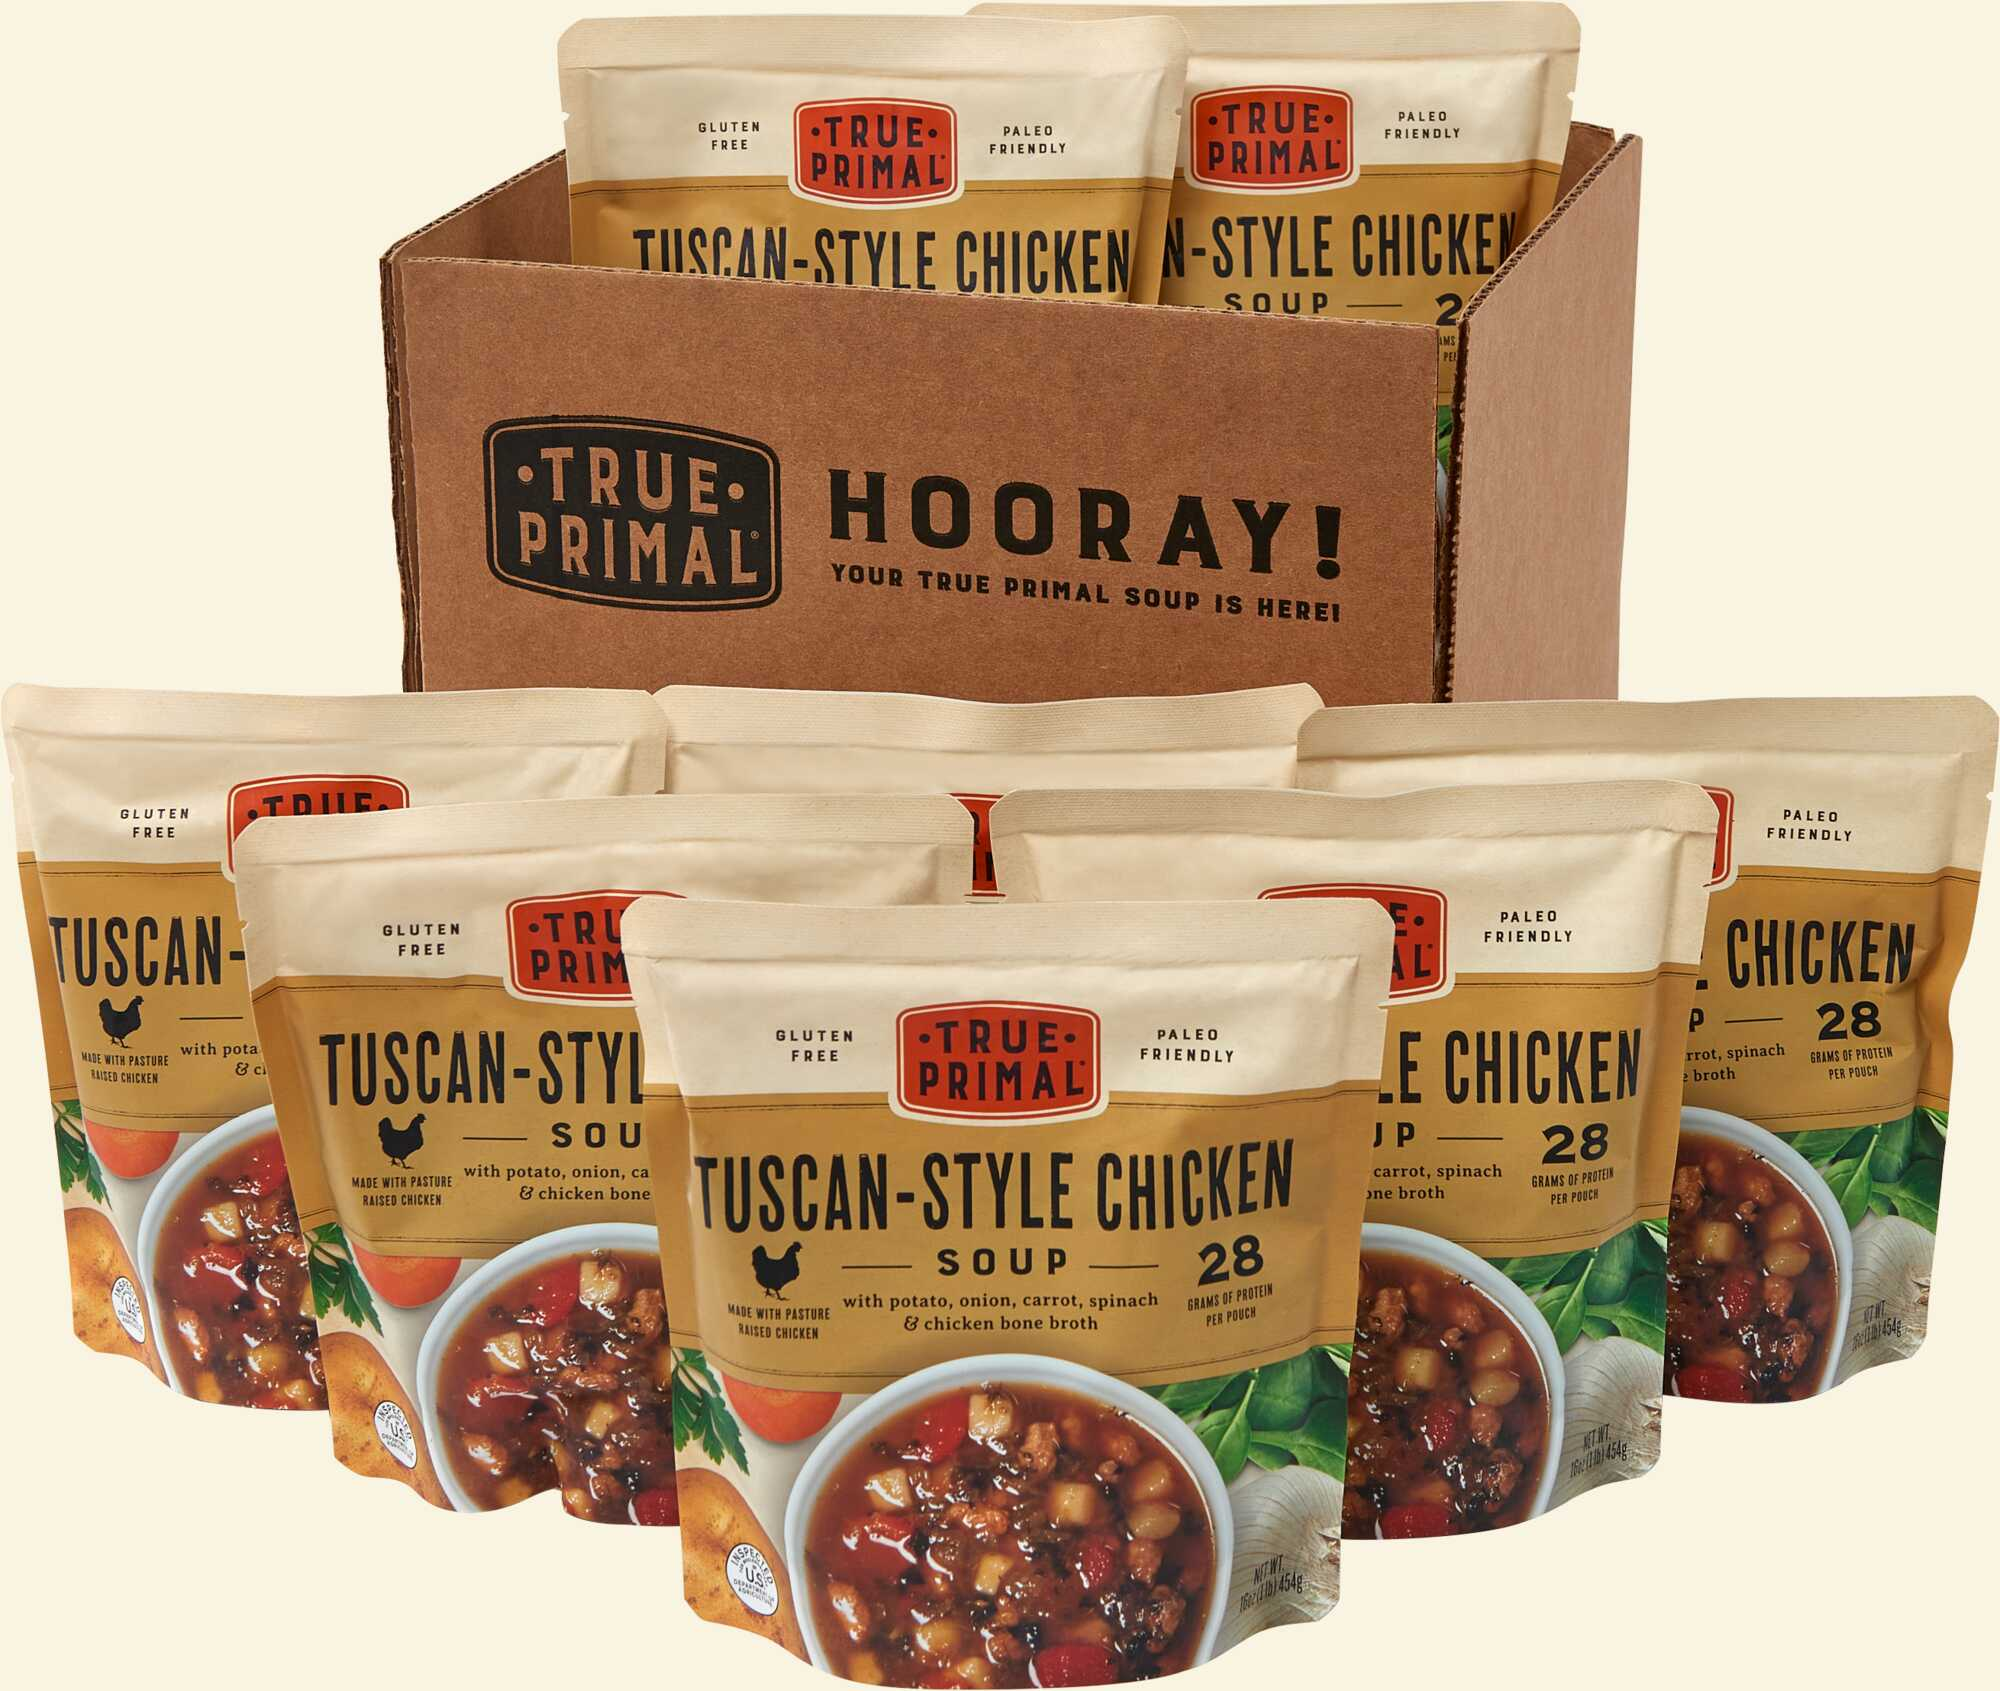 True Primal Tuscan-Style Chicken Soup 8-pack